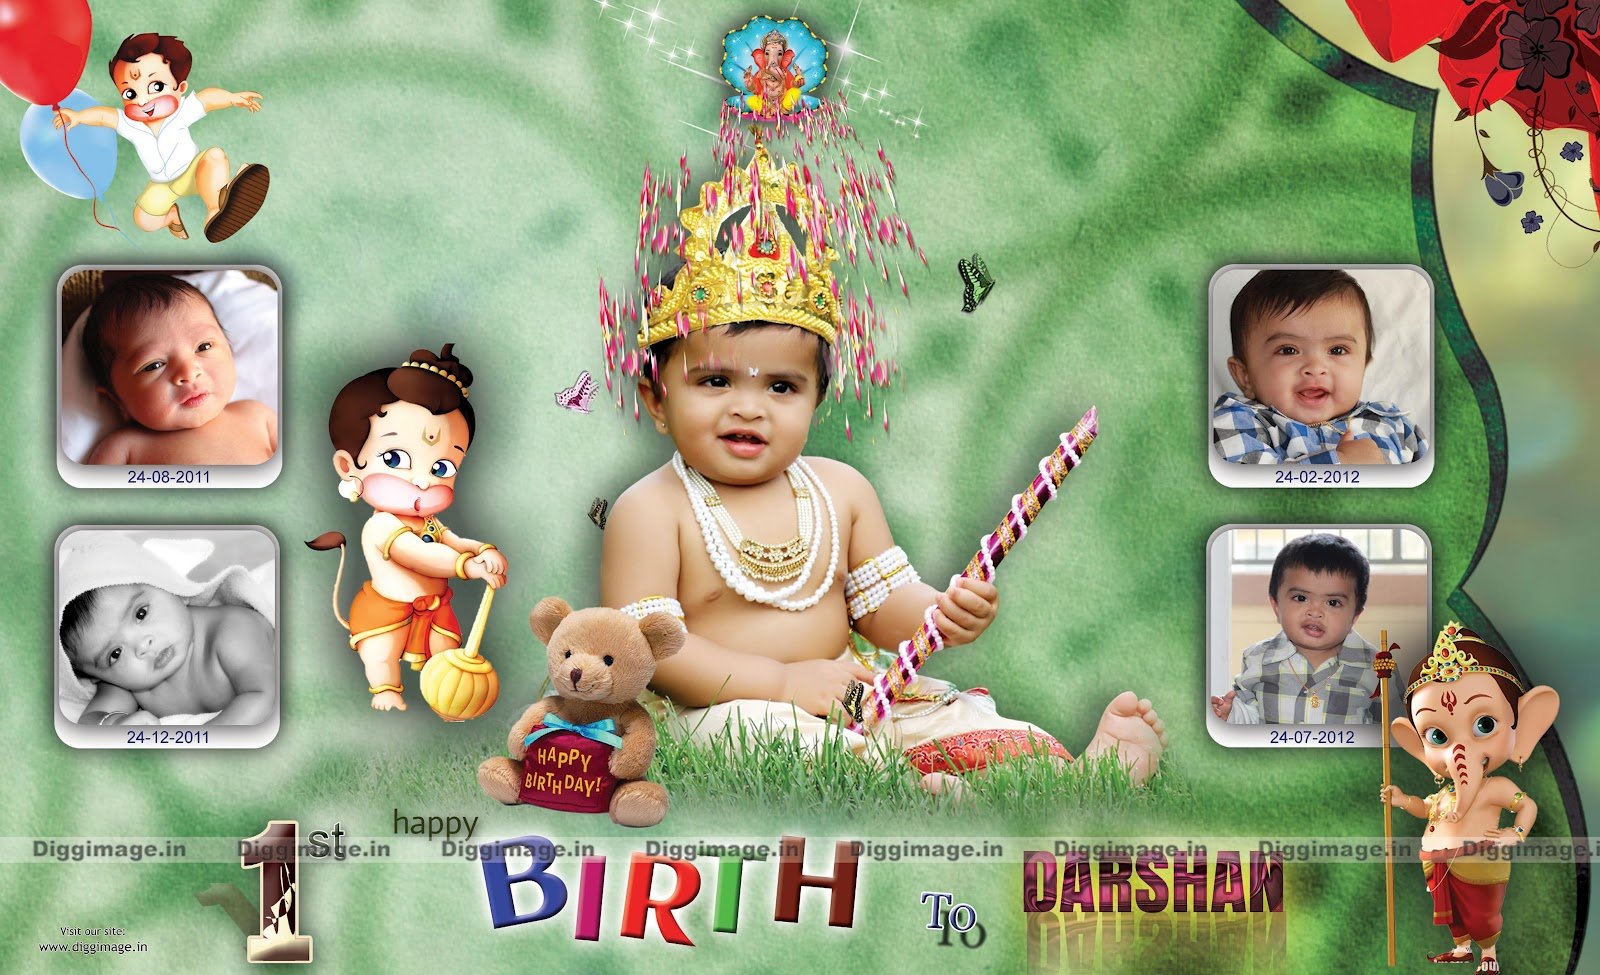 birthday flex design templates ; birthday+flex+to+NRi+%2528indain+%2529+desigen+by+diggimage